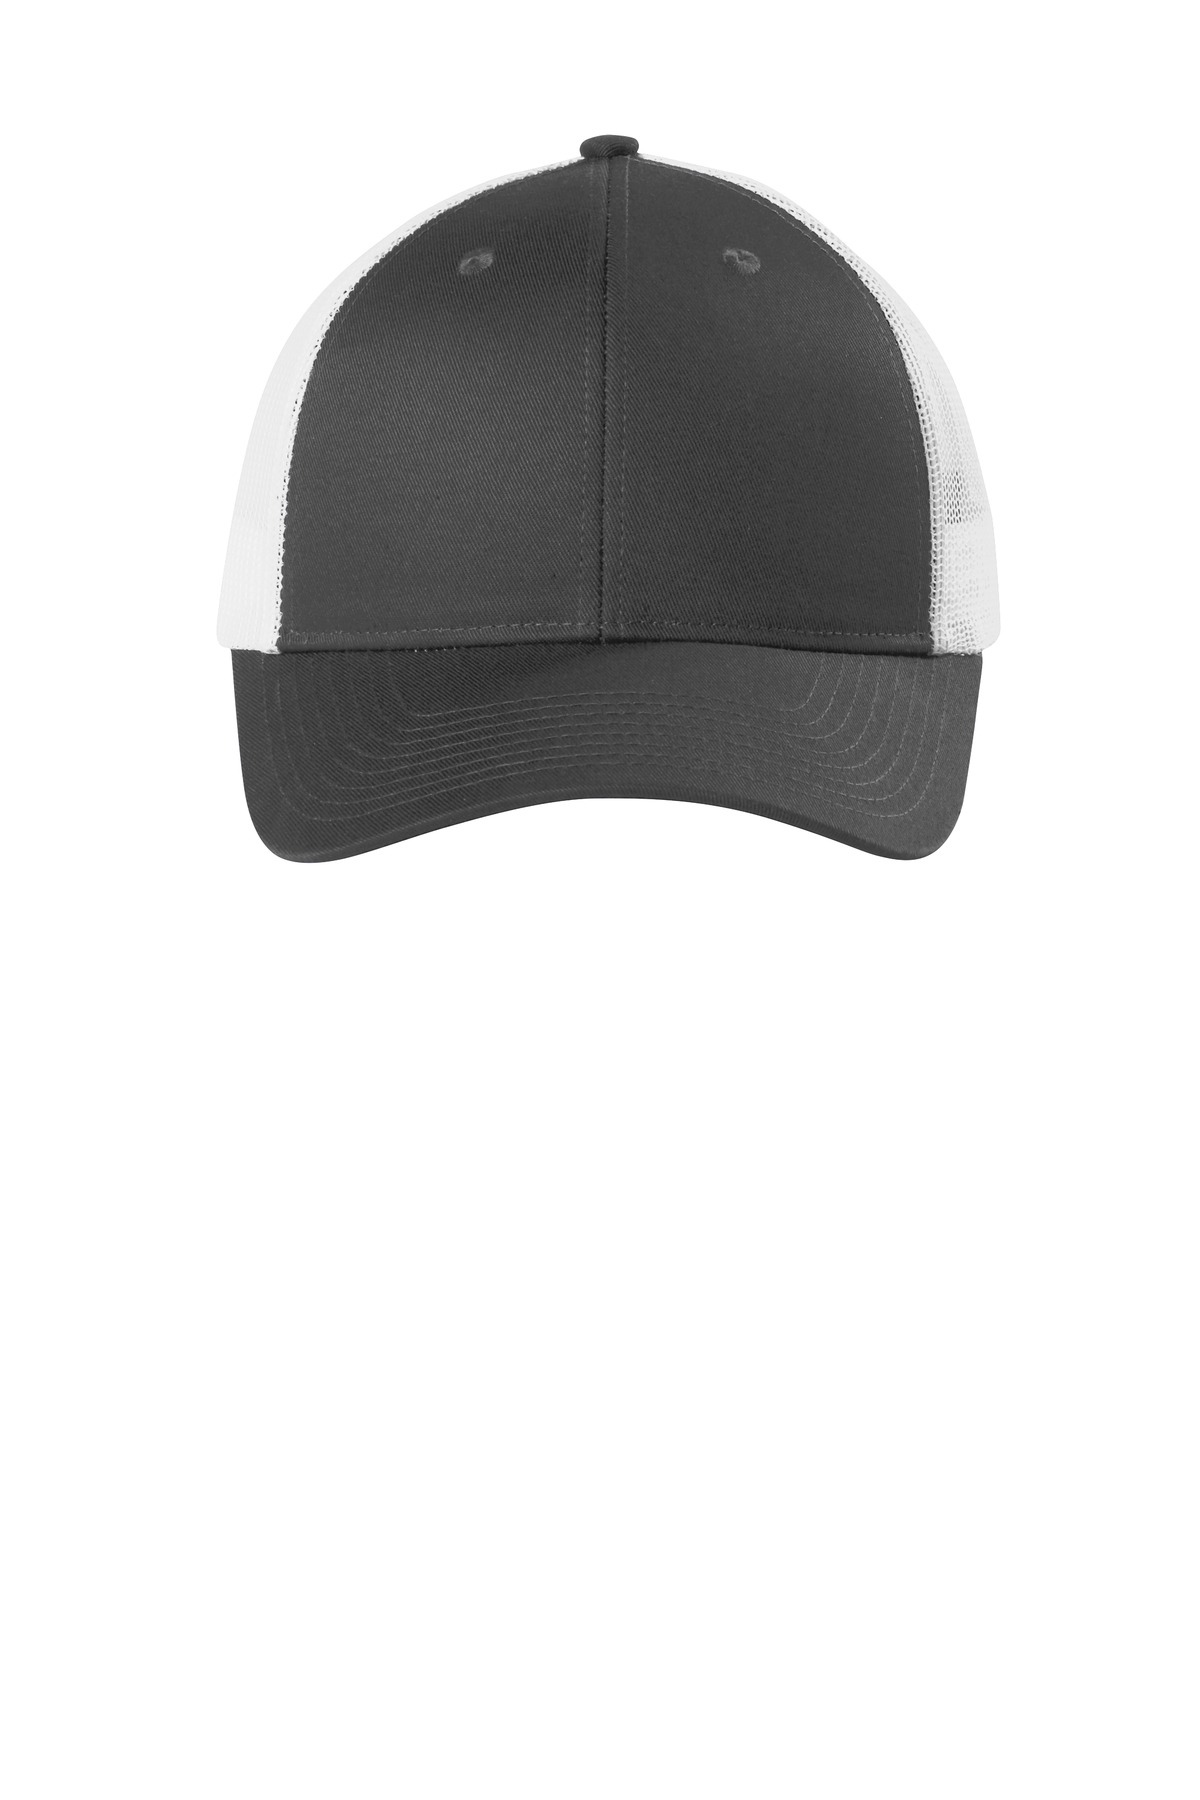 Port Authority  ®  Low-Profile Snapback Trucker Cap. C112LP - Grey Steel/ White